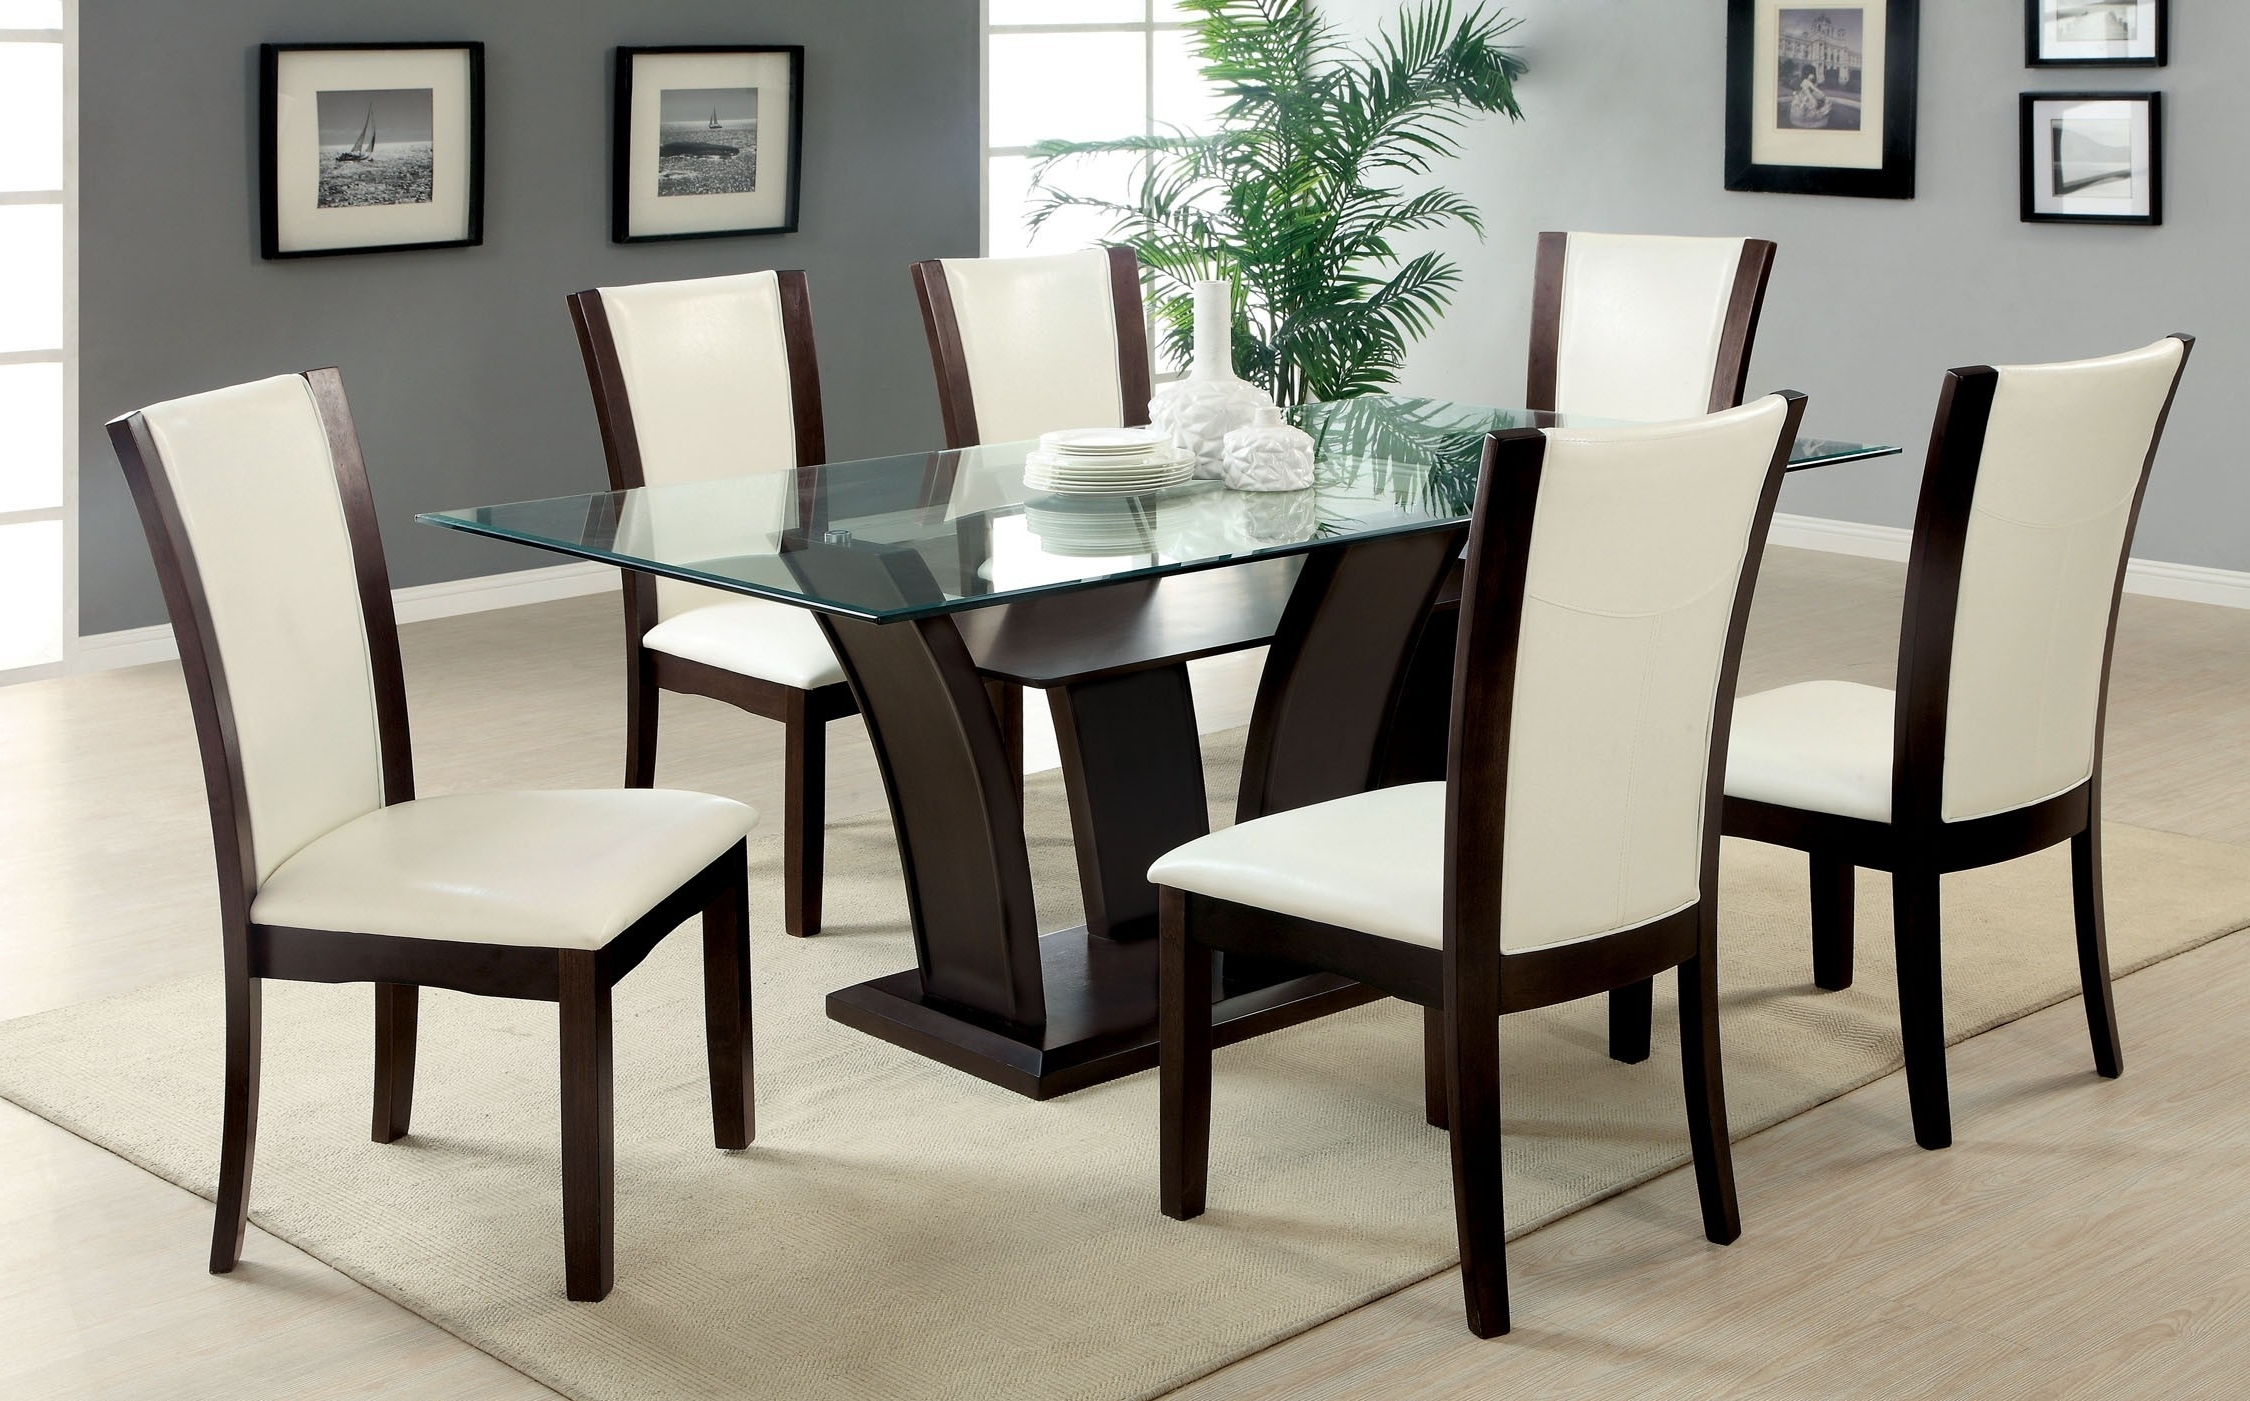 Most Recent 8 Seater Round Dining Table And Chairs With Regard To Glamorous Round Dining Table Set For 8 Dimensions Large Chairs And (View 20 of 25)